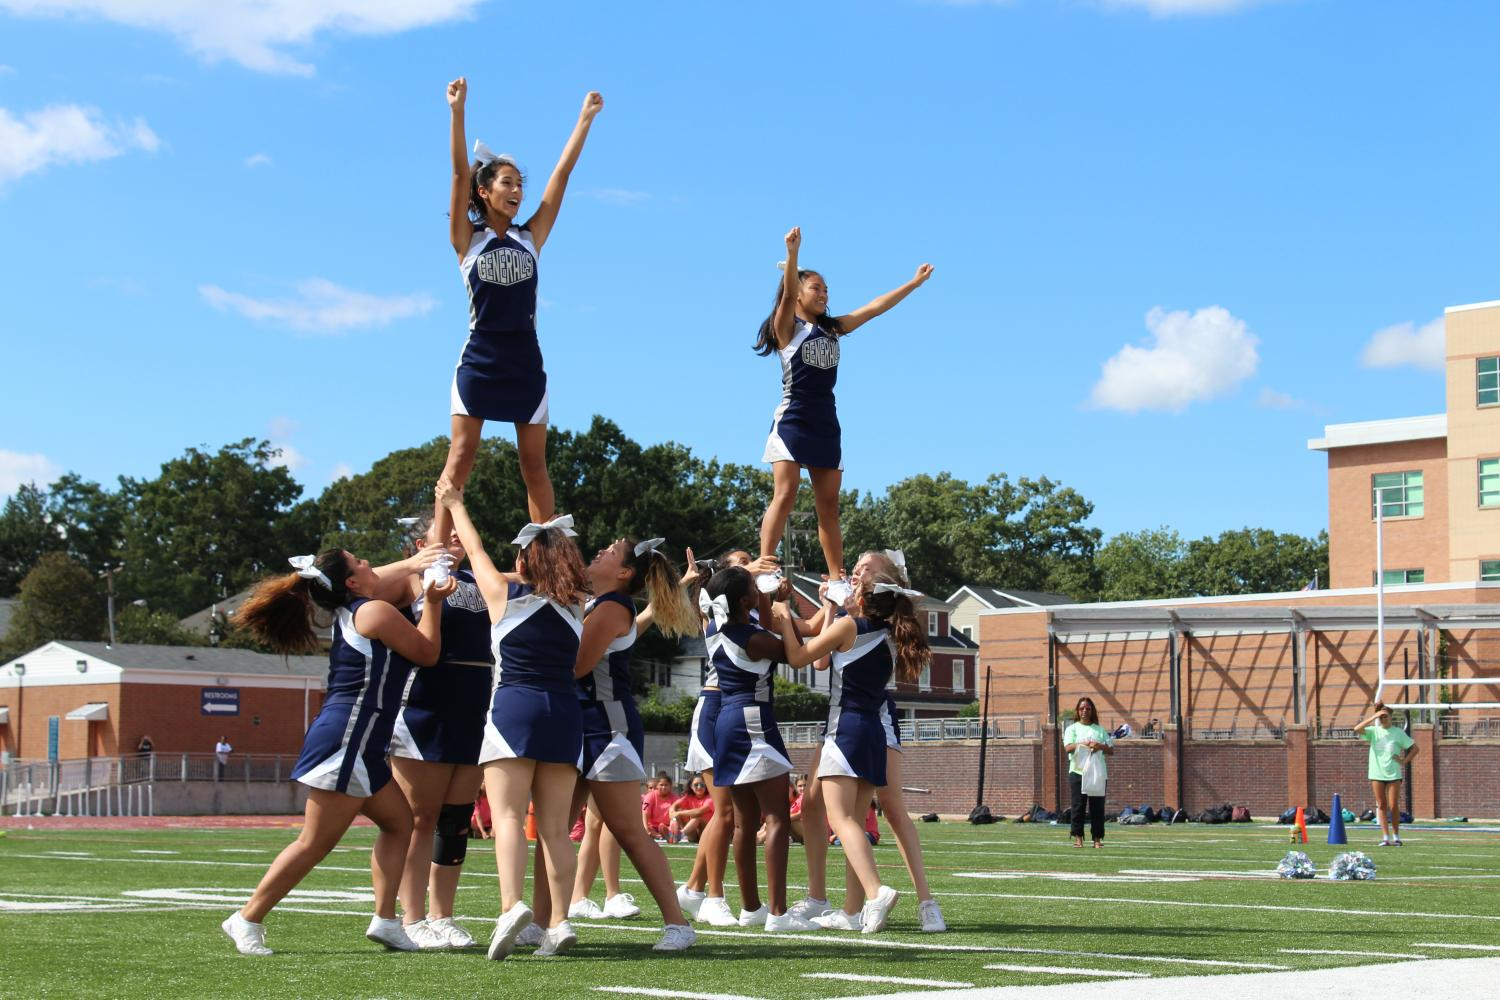 The JV cheer team lifts two of their members to pump up the crowd at the pep rally